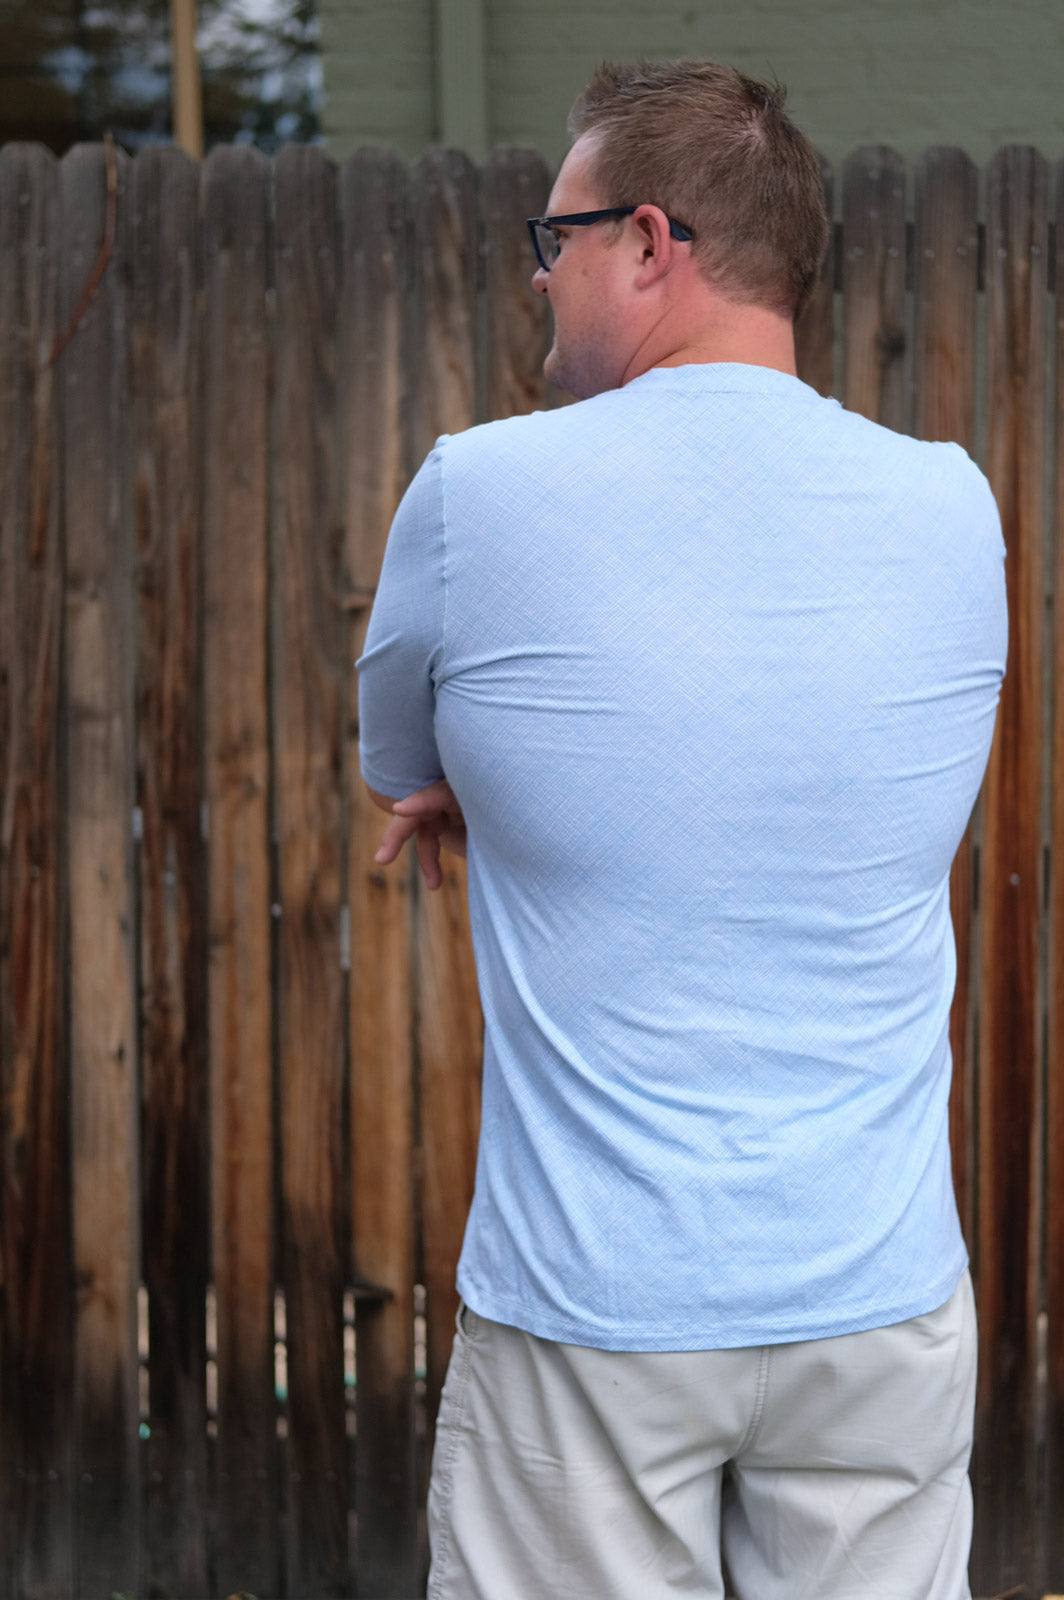 Back view of the Thread Theory Men's Tee